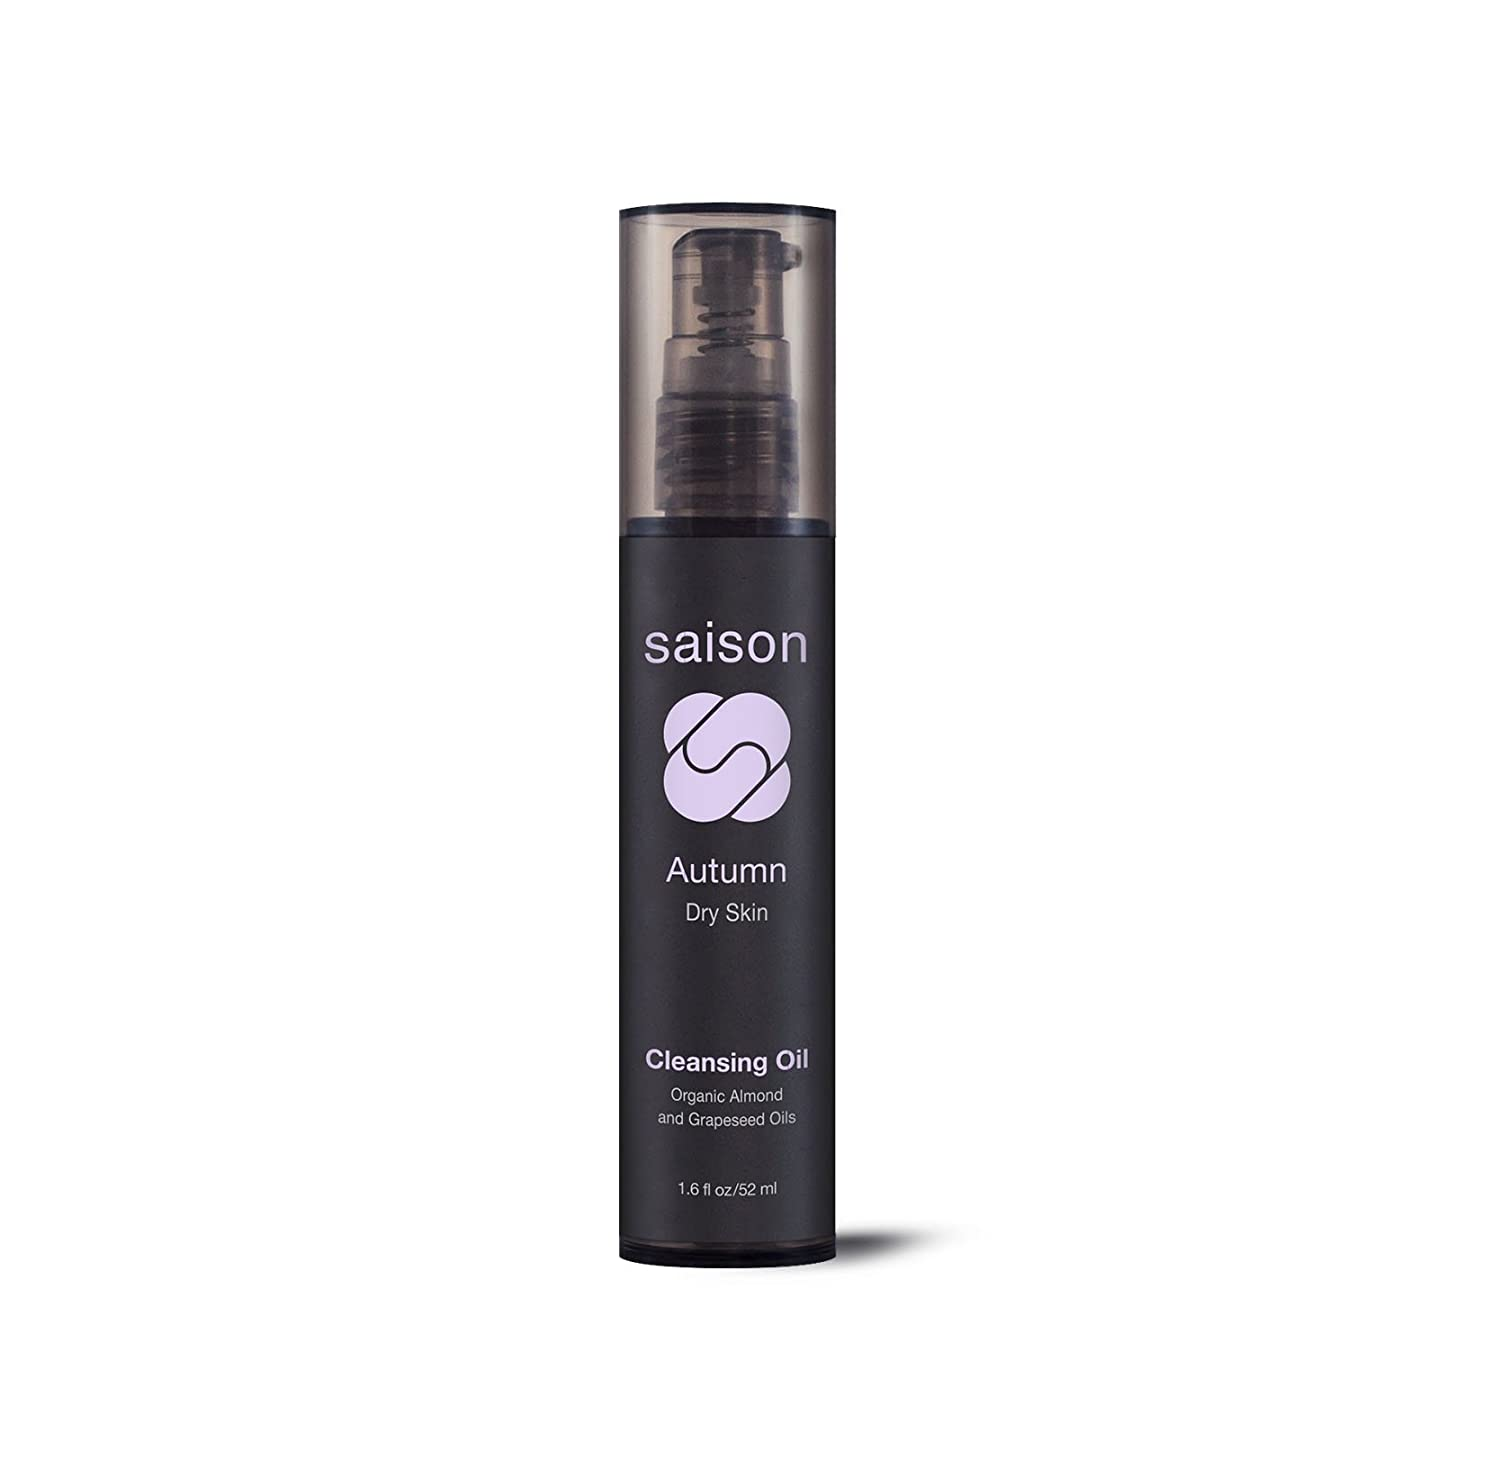 Saison Autumn Cleansing Oil   Organic, Natural, Vegan & Cruelty Free Beauty   Good for Dry Skin